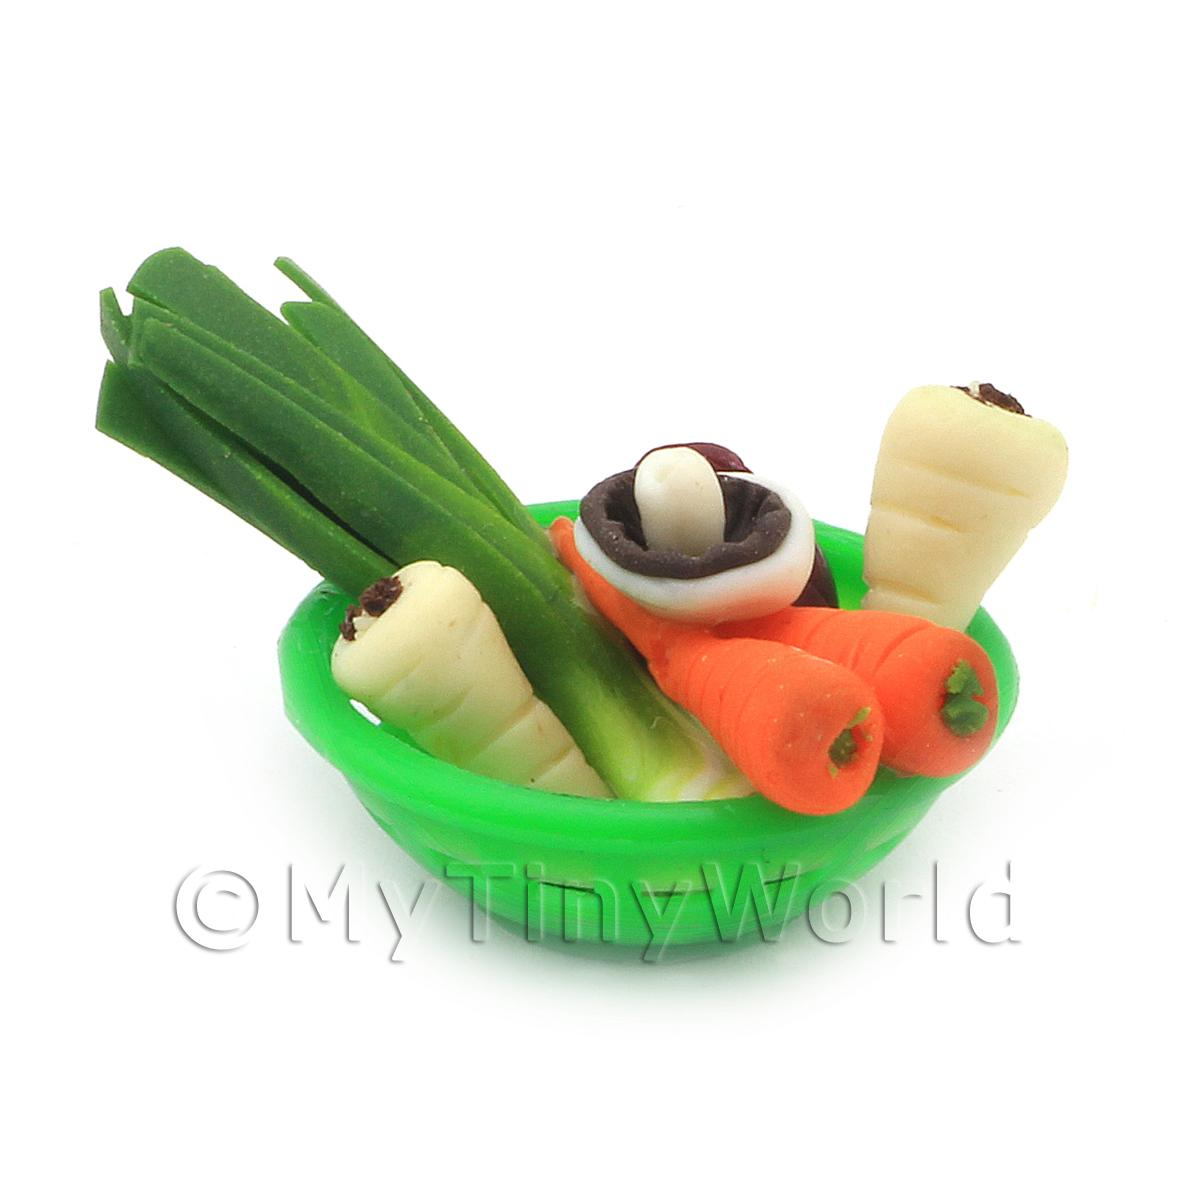 Dolls House Miniature Vegetable Assortment In Green Bowl